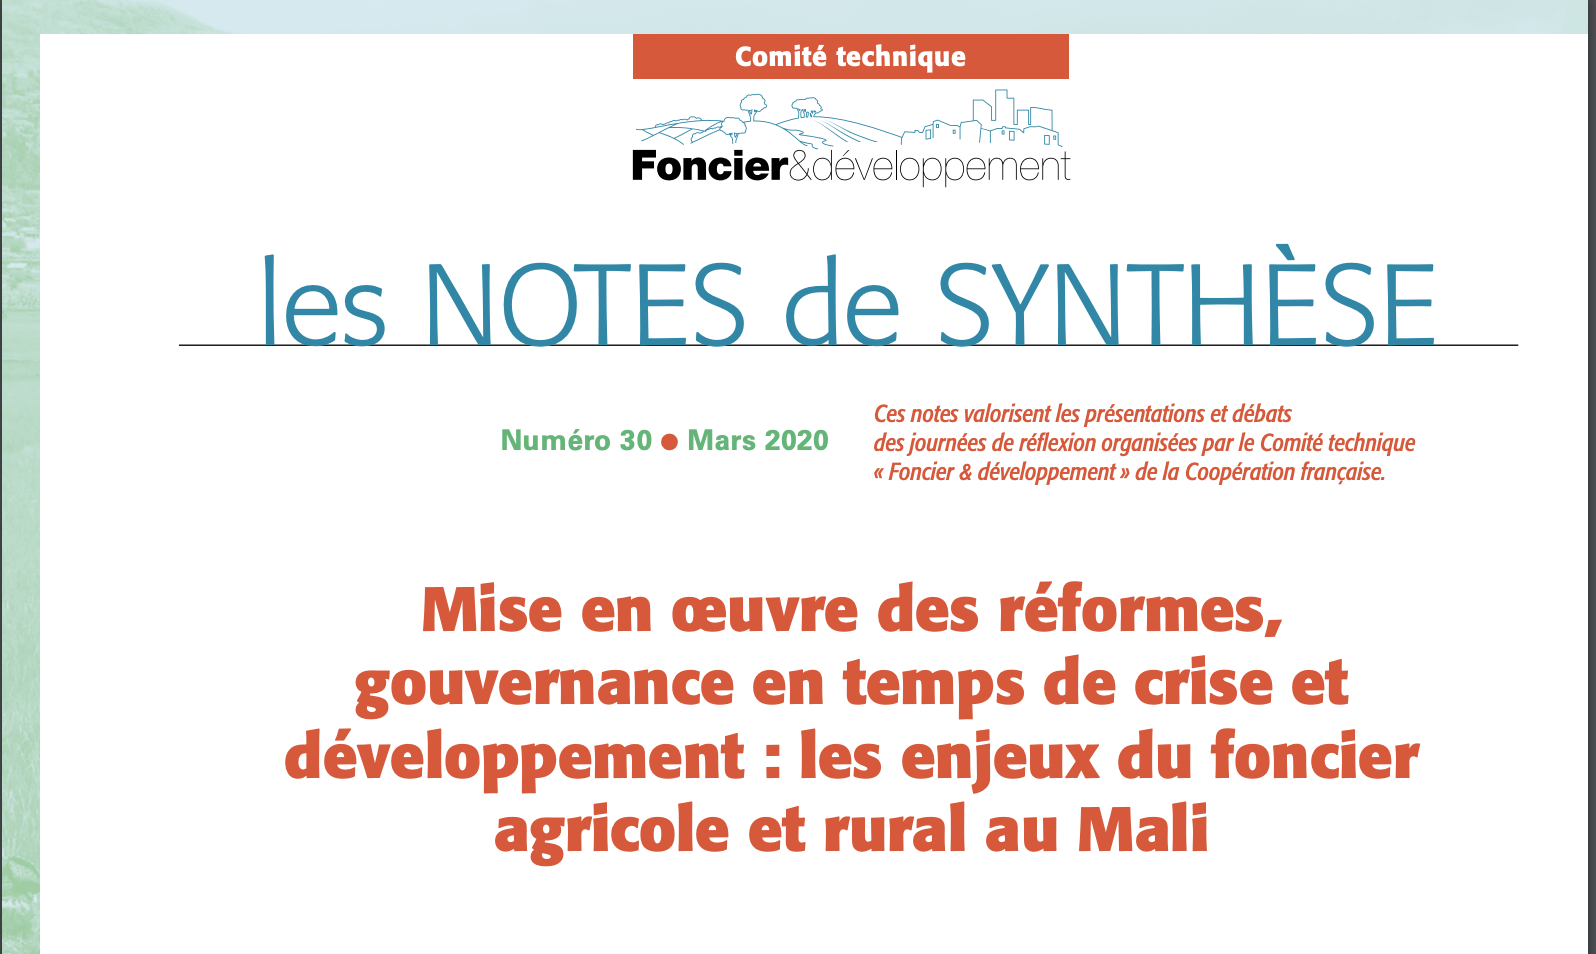 Note de synthese